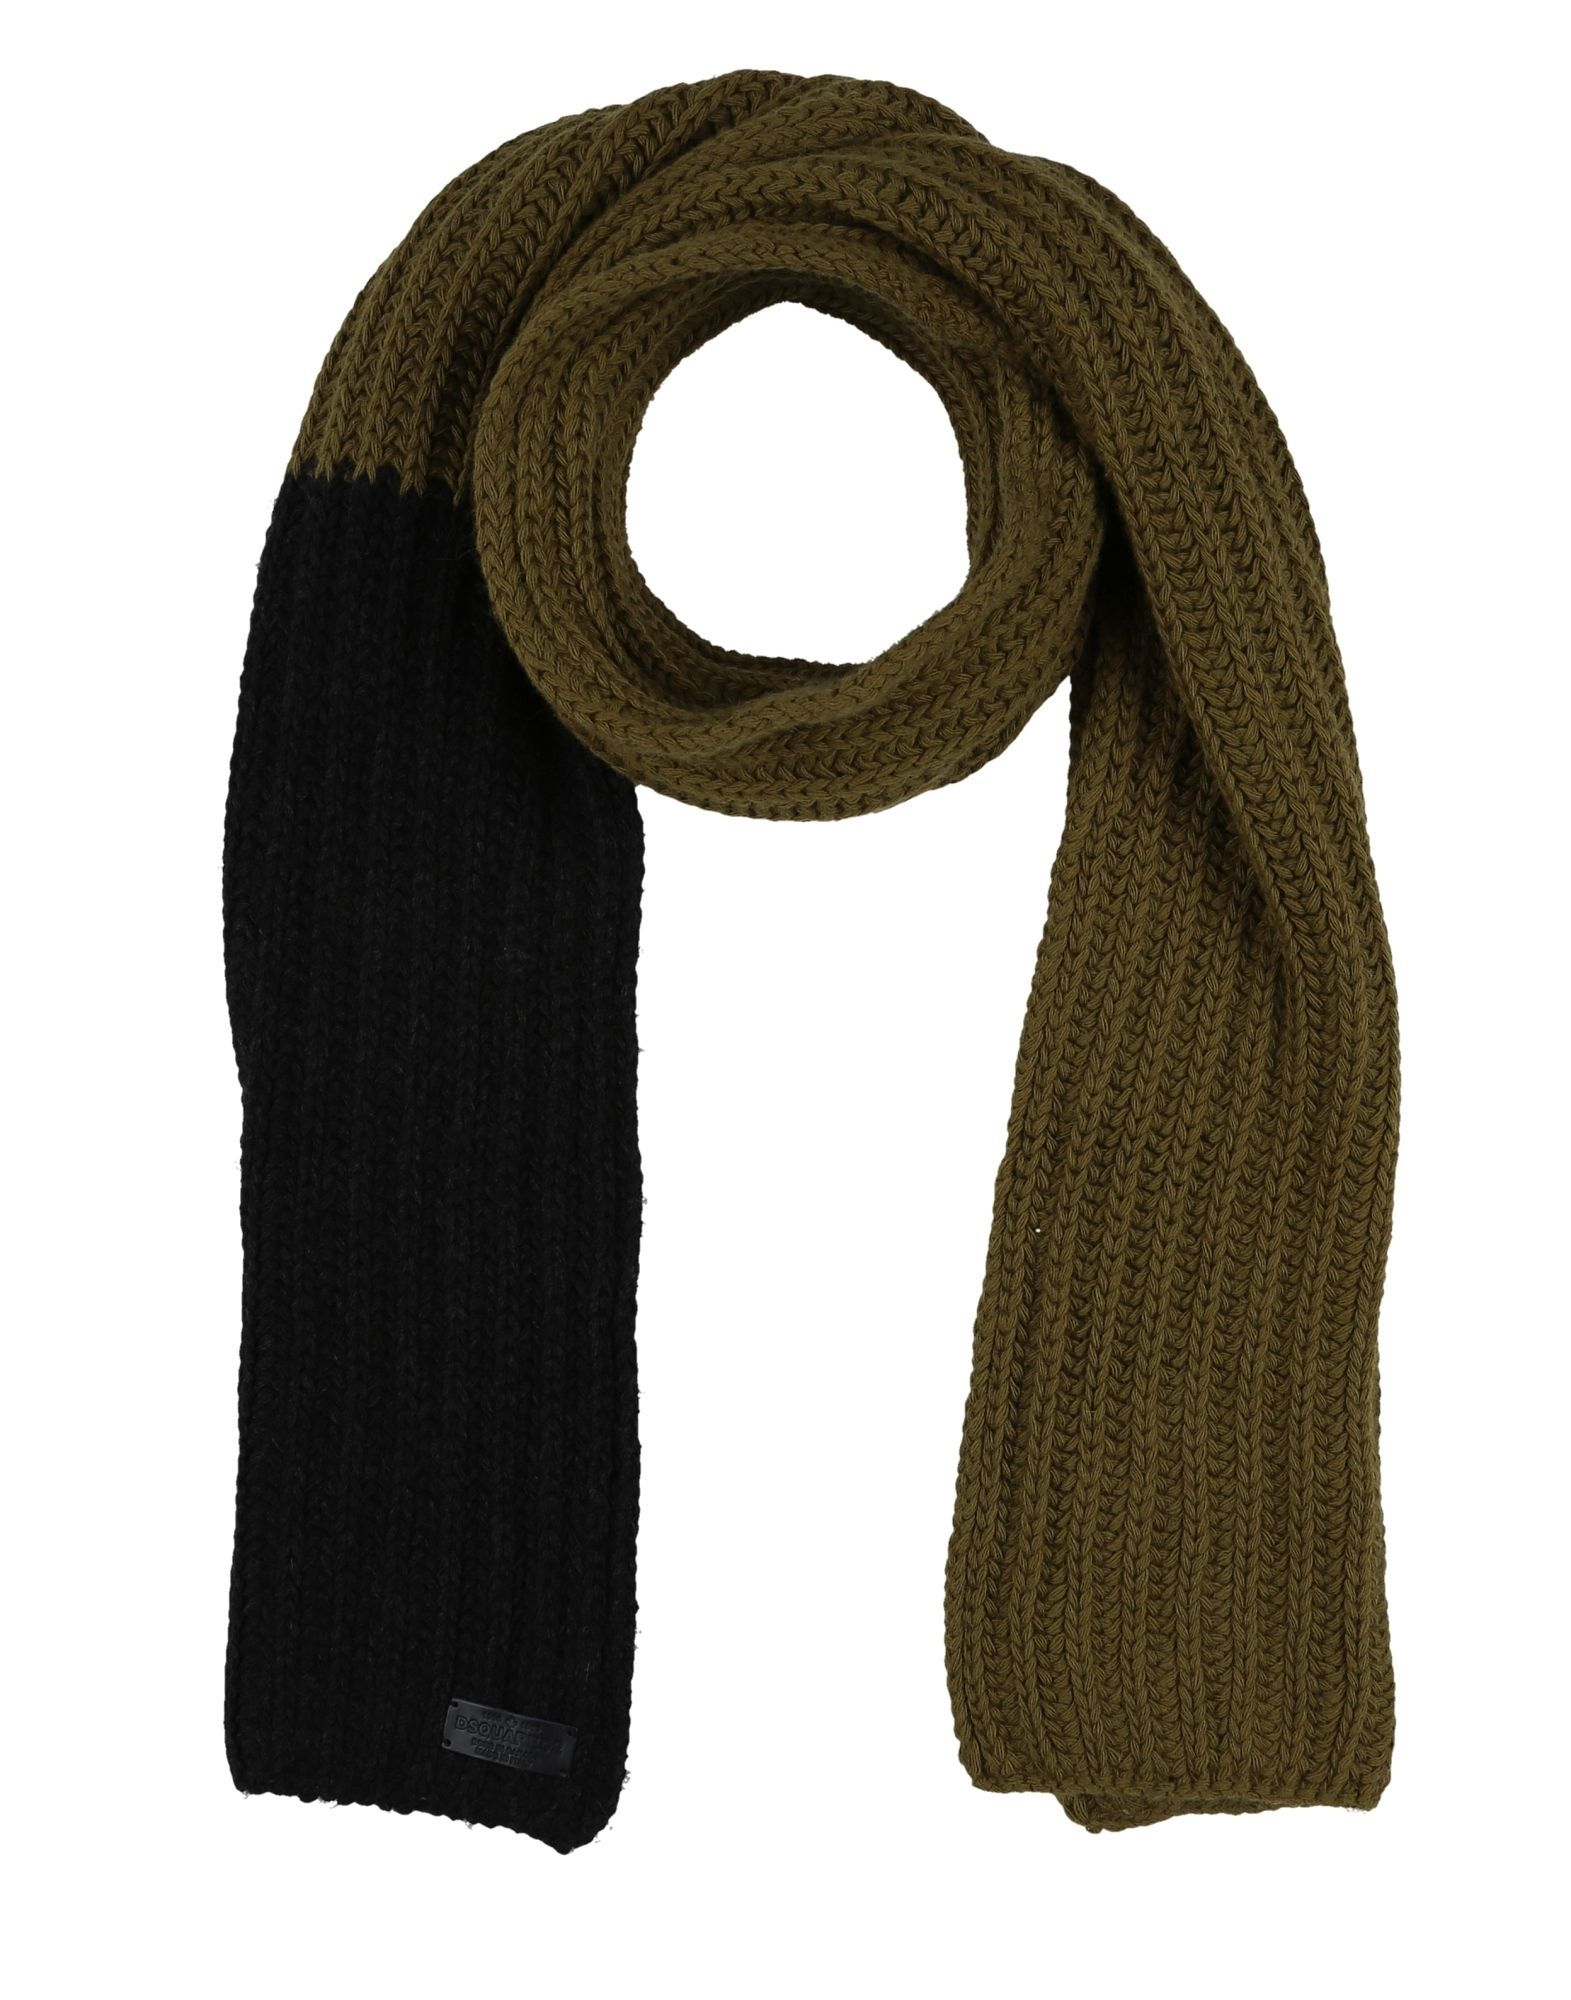 Dsquared2 Military Green Wool Knit Scarf